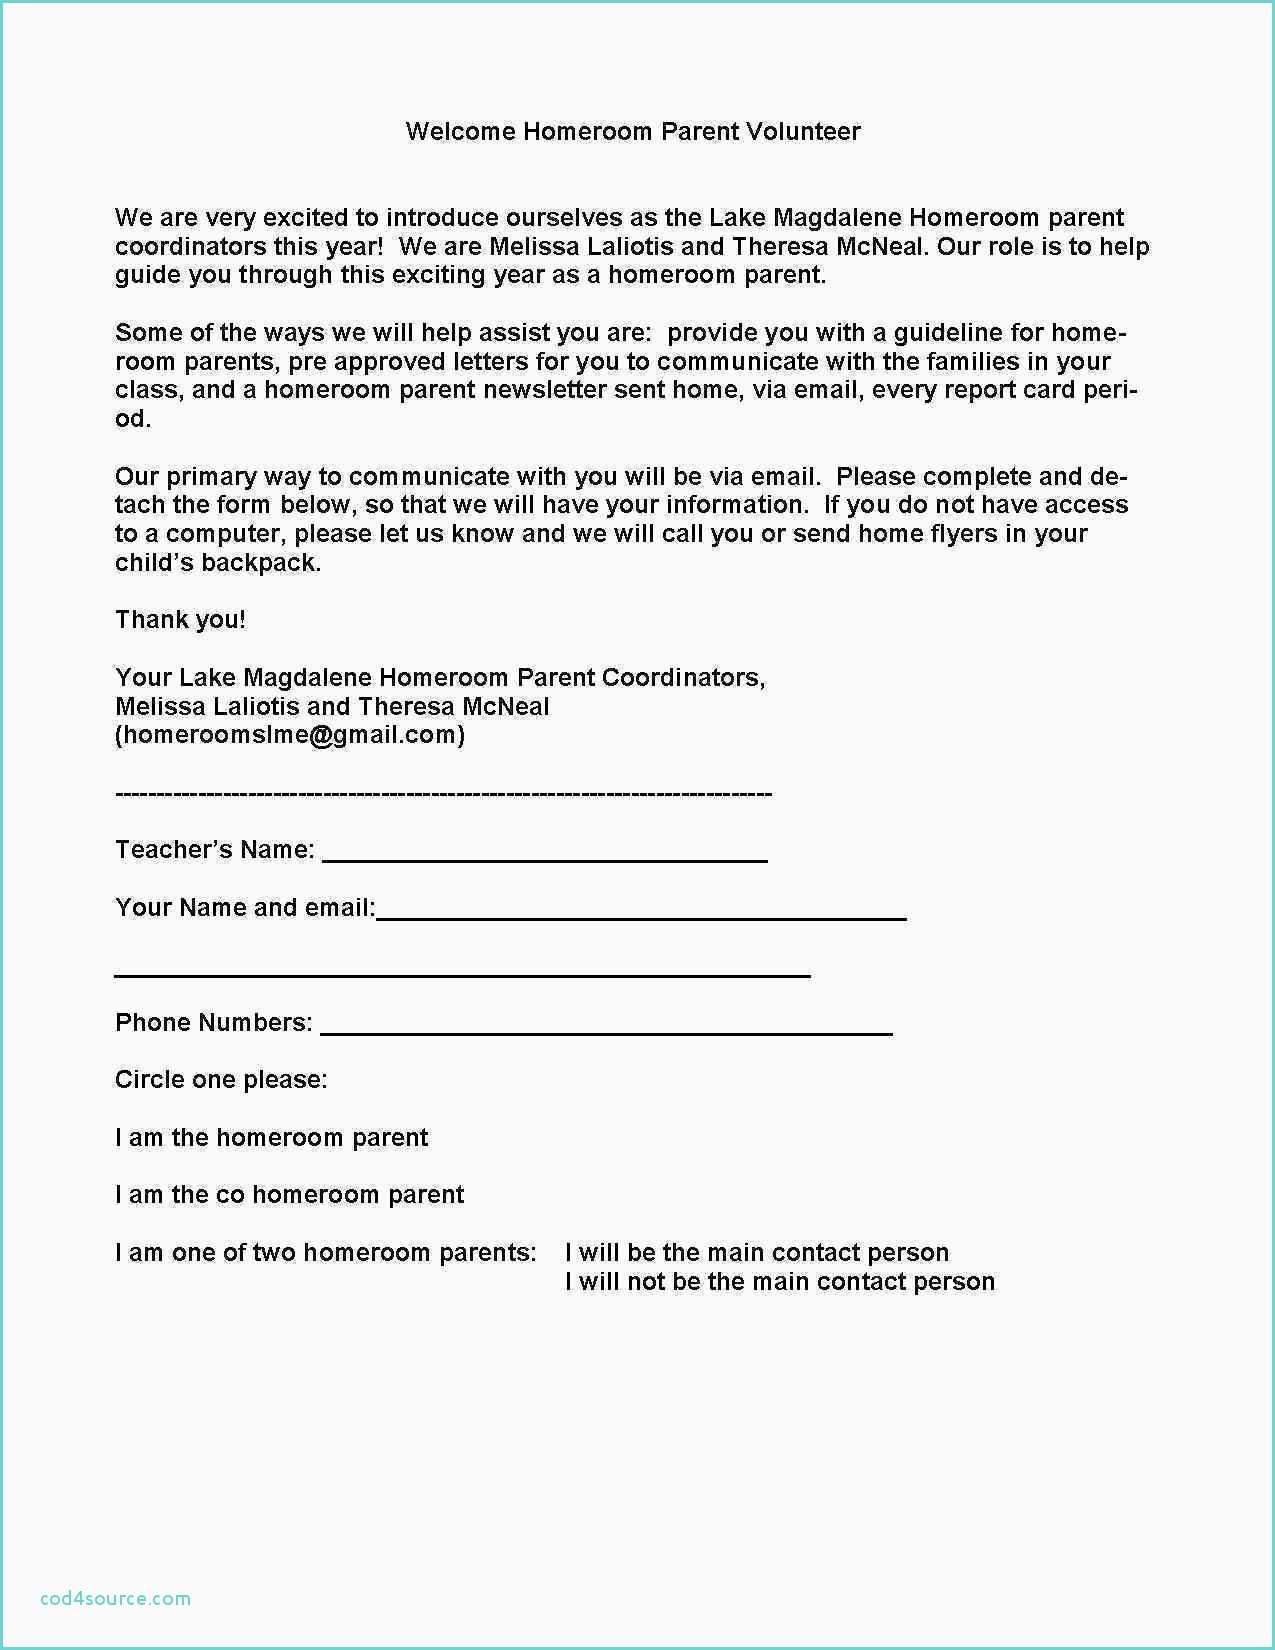 501c3 Donation Form Template Beautiful Charitable Donation Letter Template 501 C 3 Donation Receipt